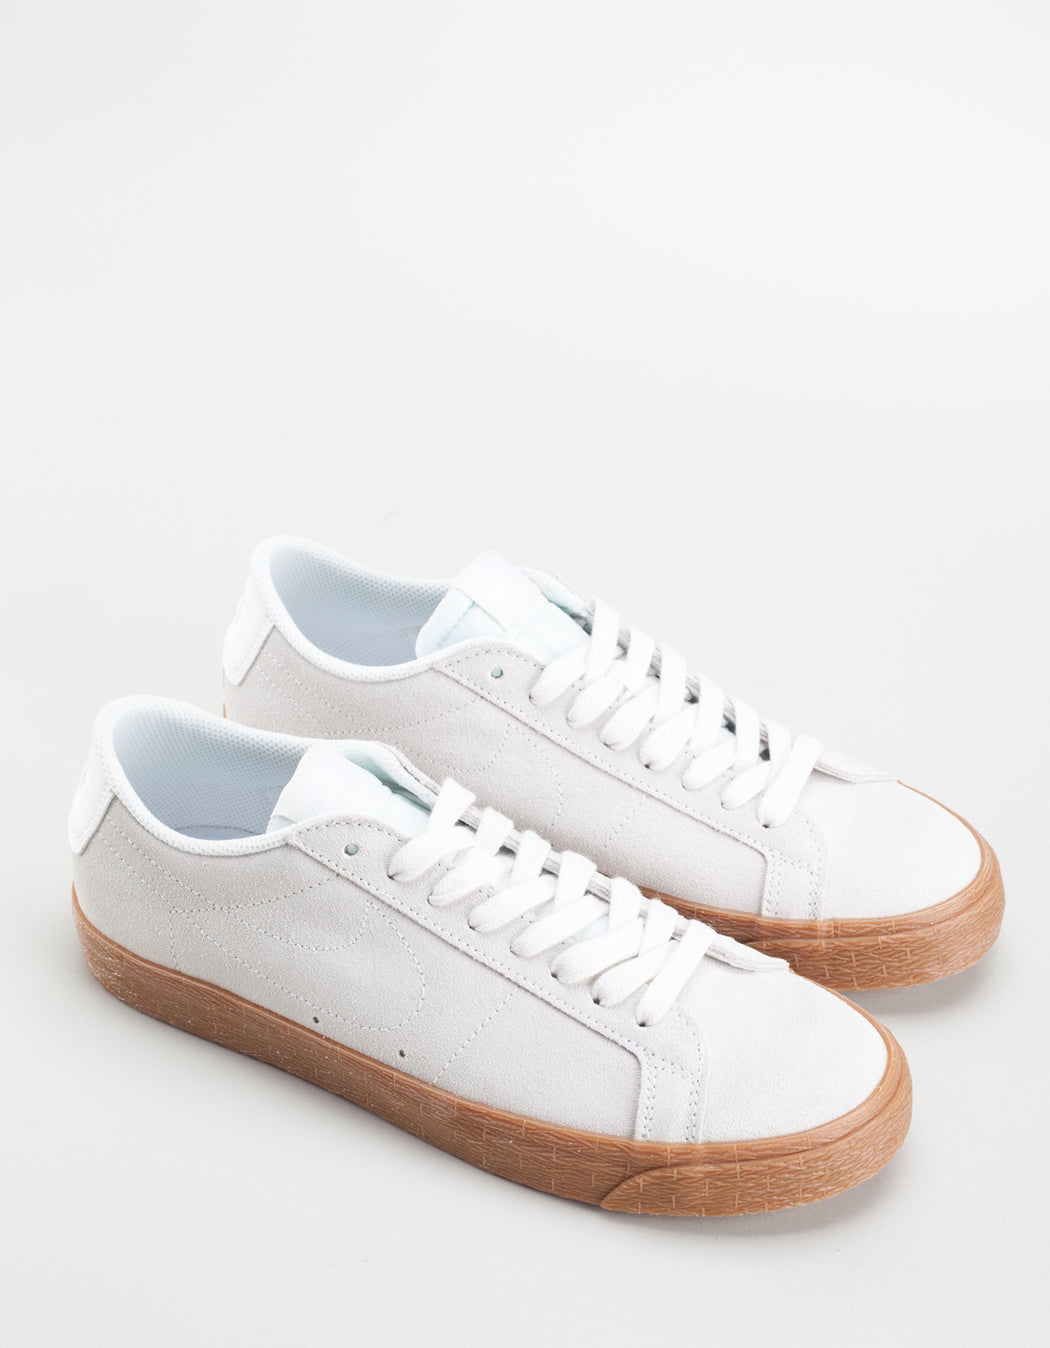 new products 68c43 4a21f new style nike low blazer hvit 6d021 615e0